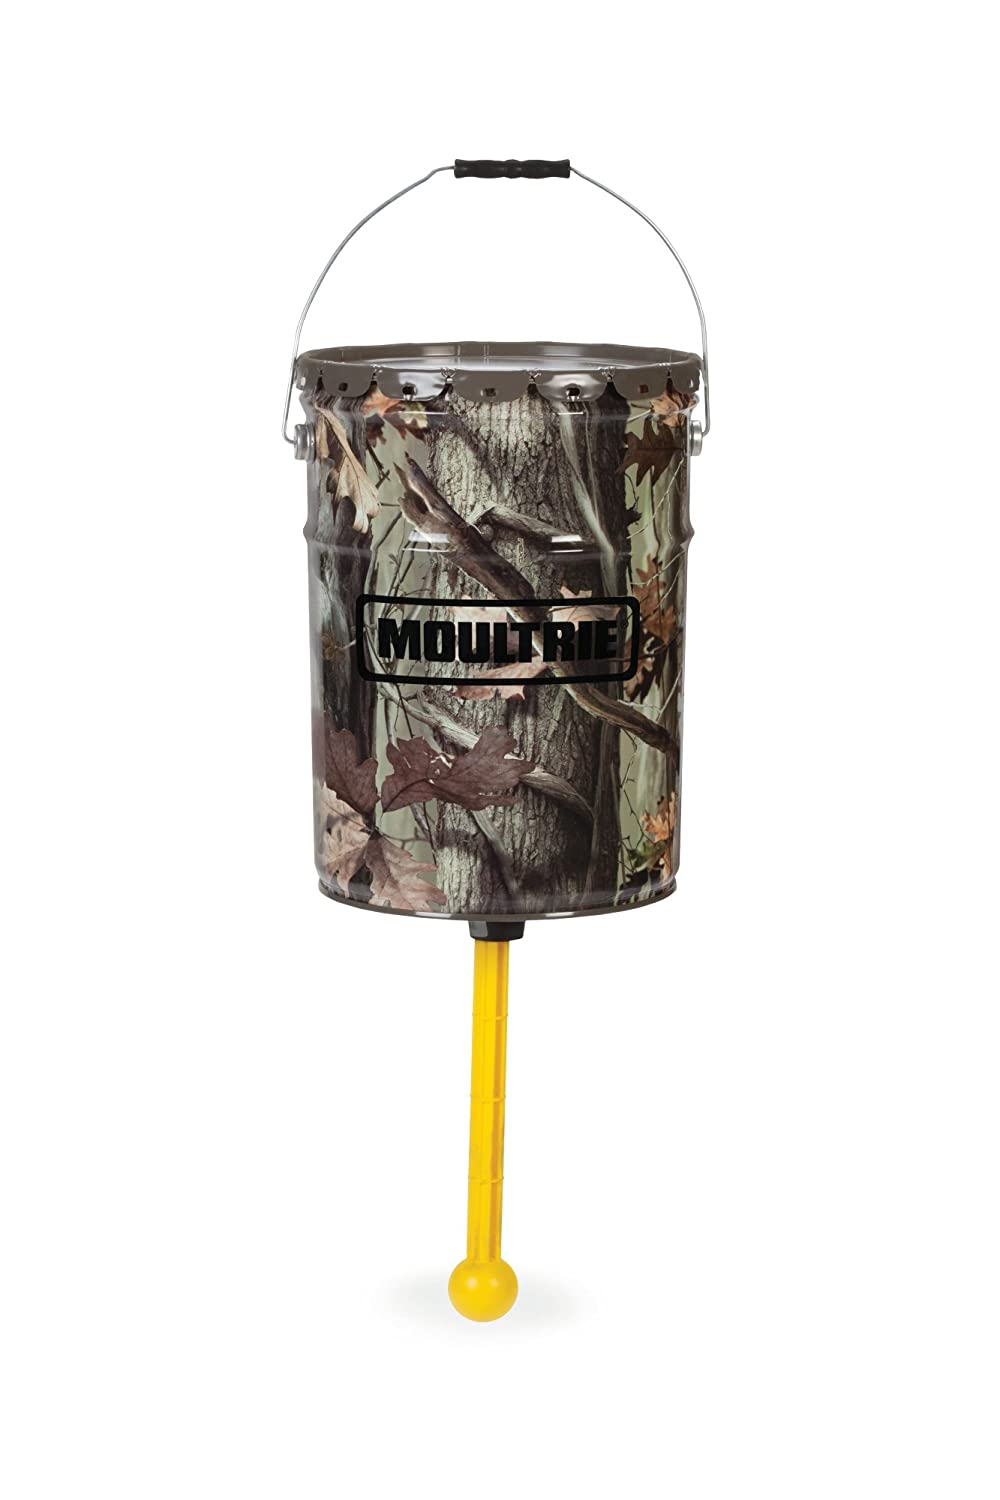 information homemade feeders deer forums image page images attached comments feeder moultrie general